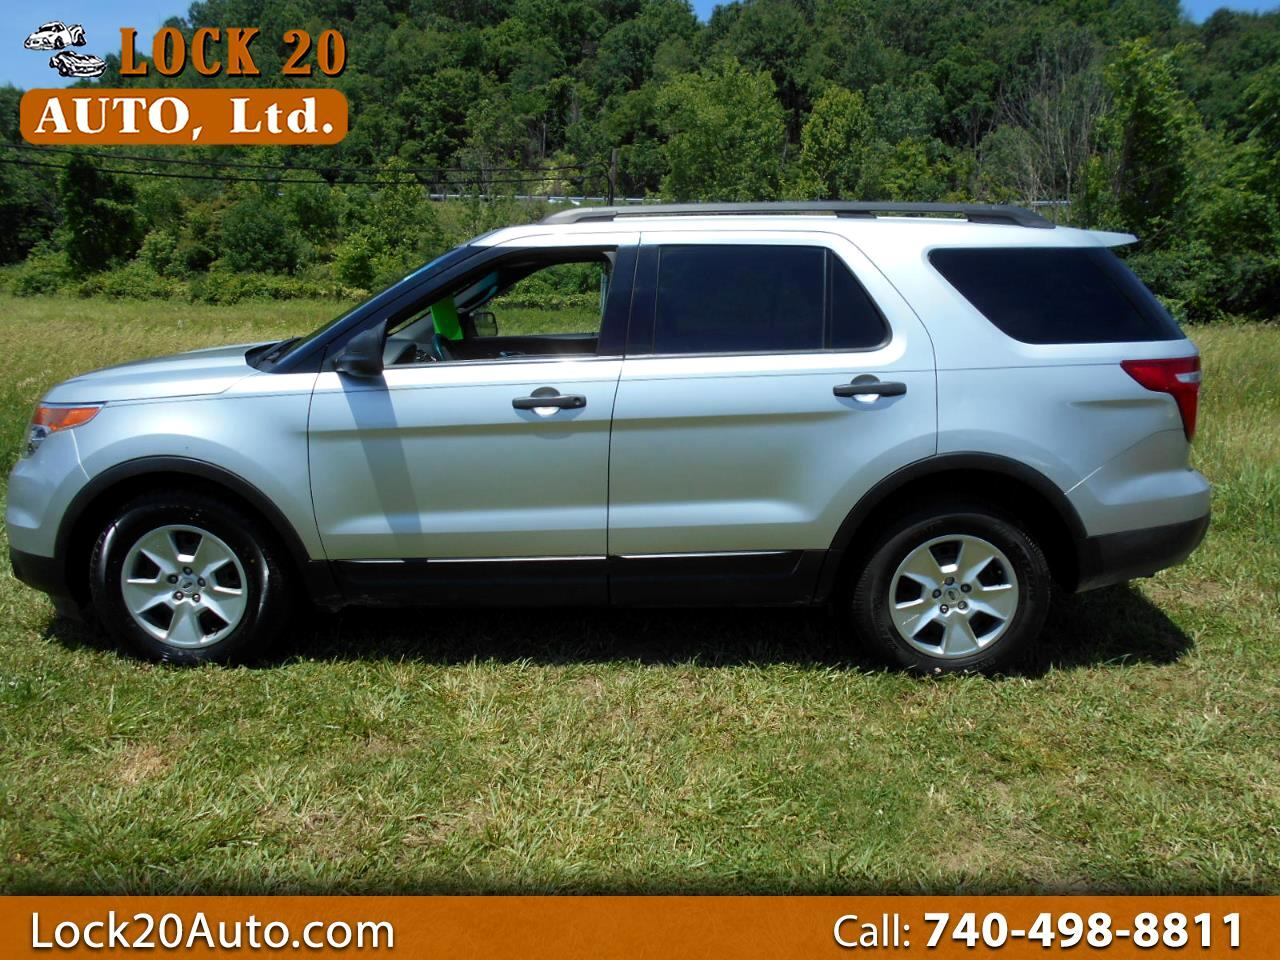 2012 Ford Explorer 4dr Wagon XLT